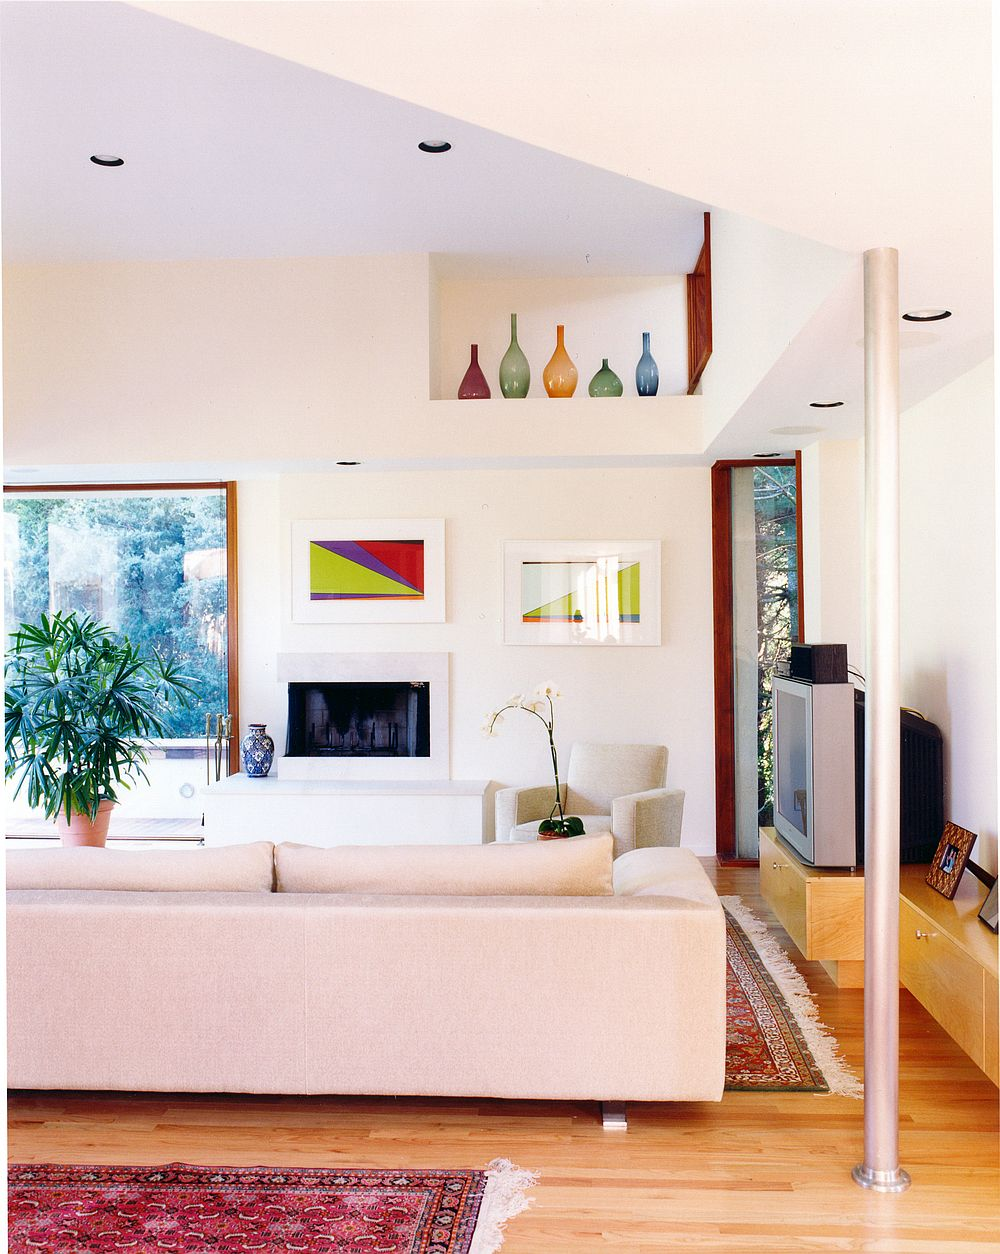 Interesting pops of accent colors added to the living area with rugs and vases